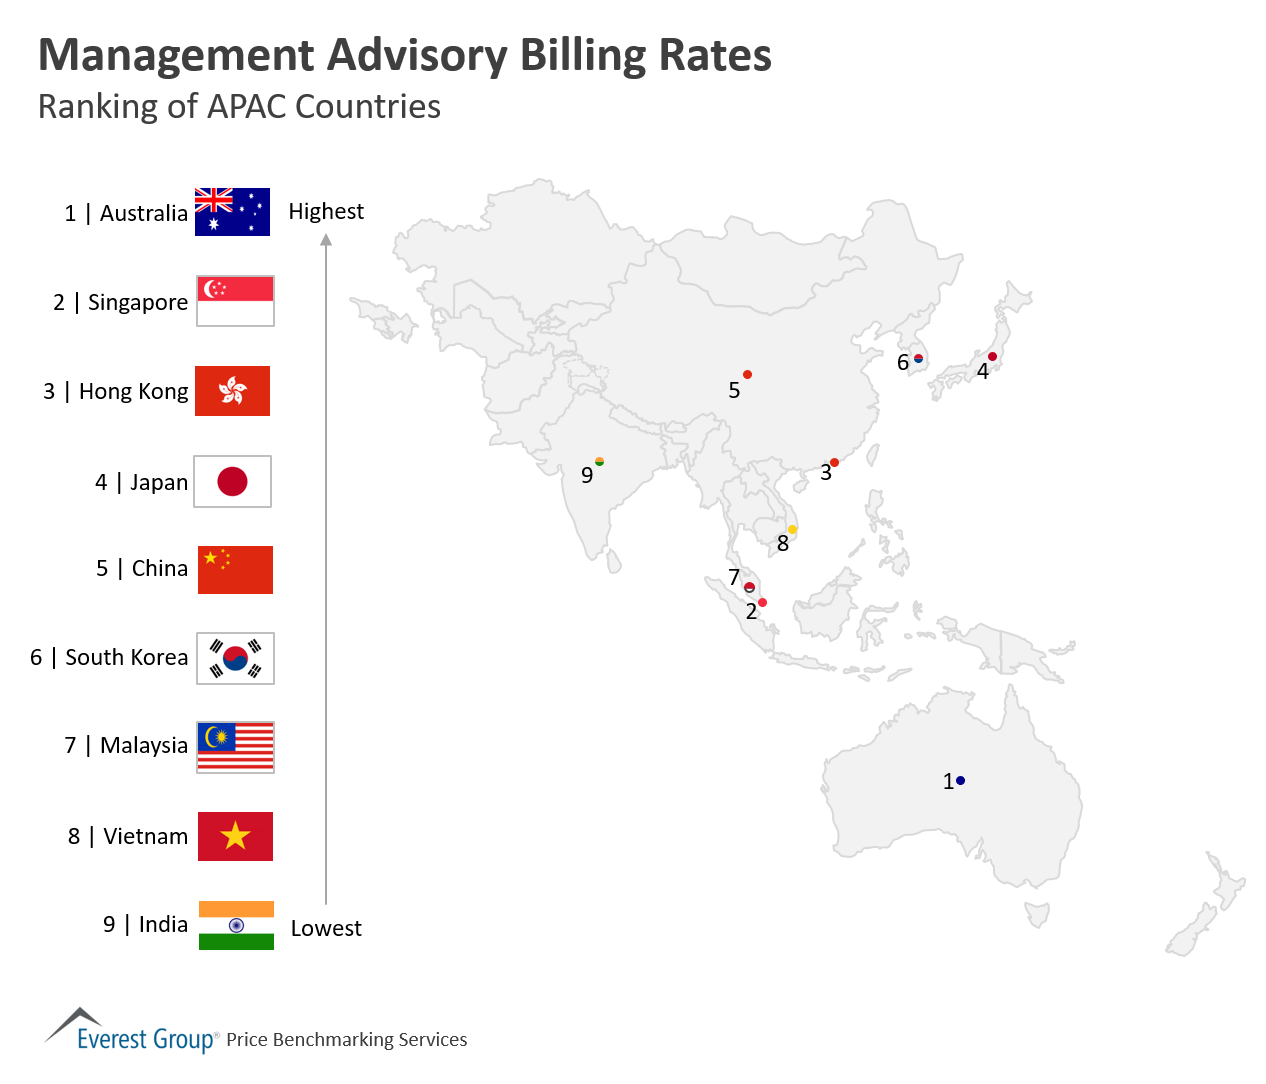 Management Advisory Billing Rates APAC